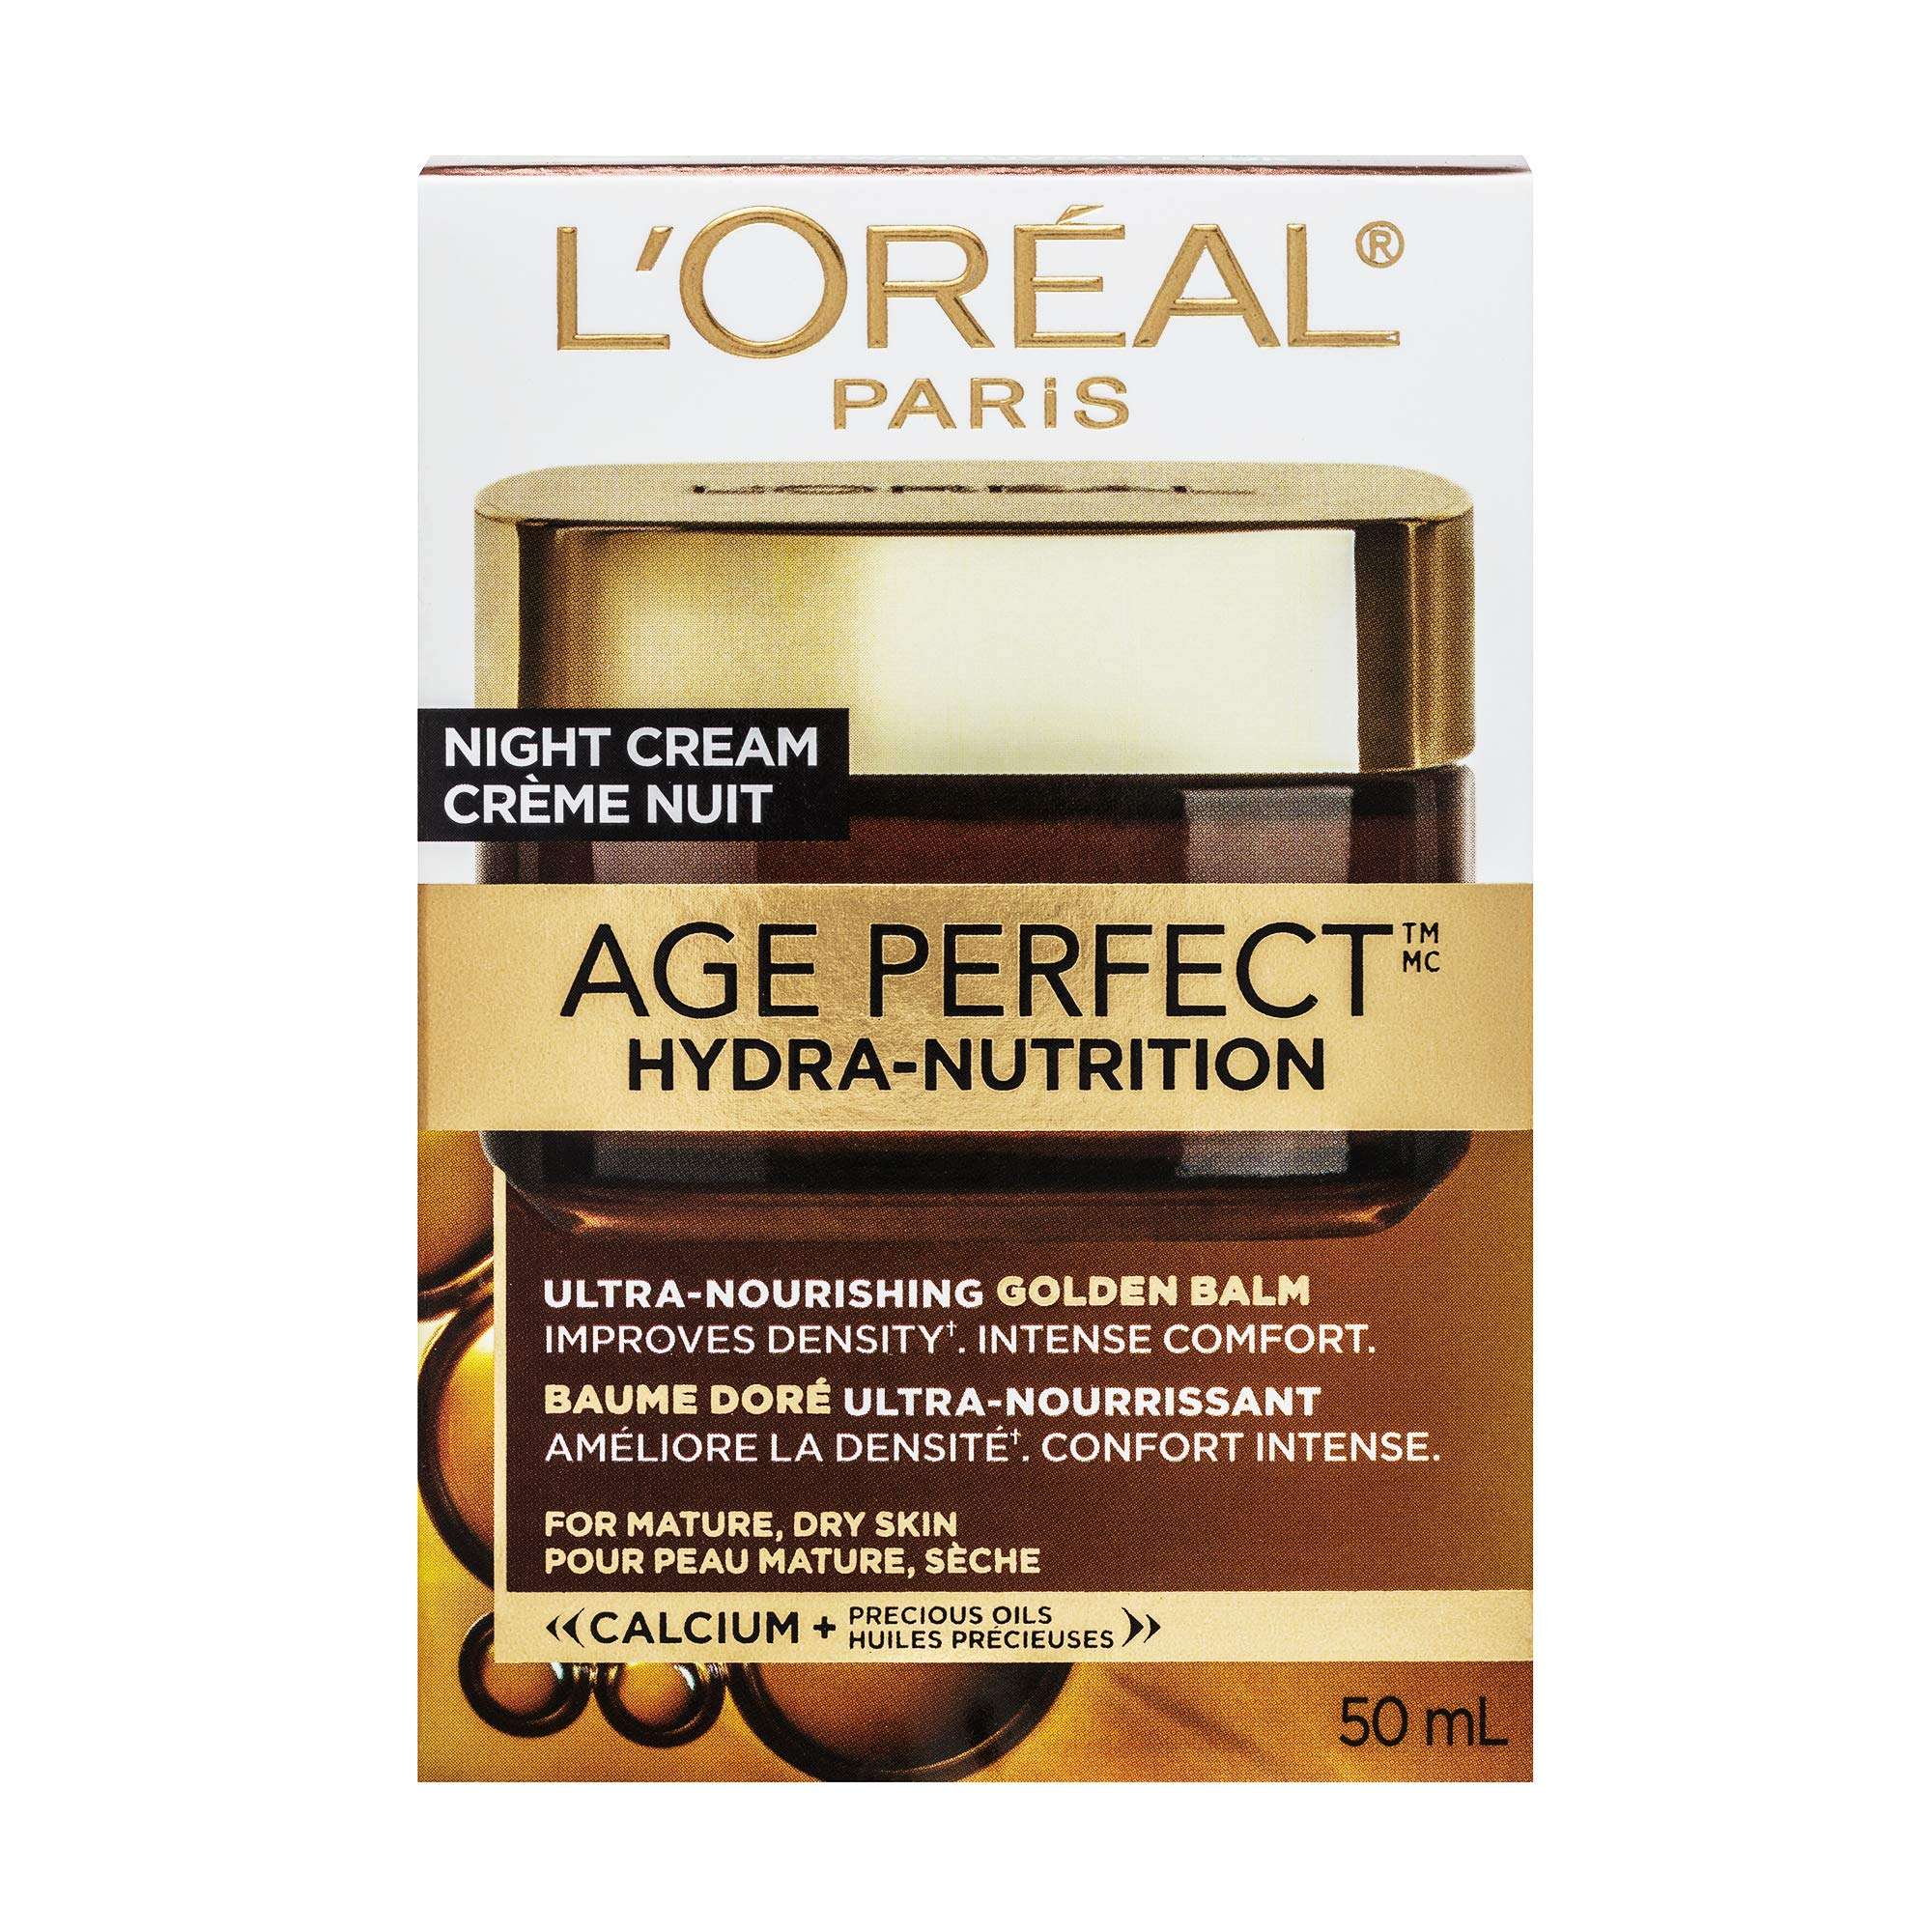 L'Oréal Paris Skincare Age Perfect Hydra-Nutrition Golden Balm Moisturizer for Face, Neck and Chest, Formulated with Calcium and Precious Oils, 1.7 oz. by L'Oreal Paris (Image #4)